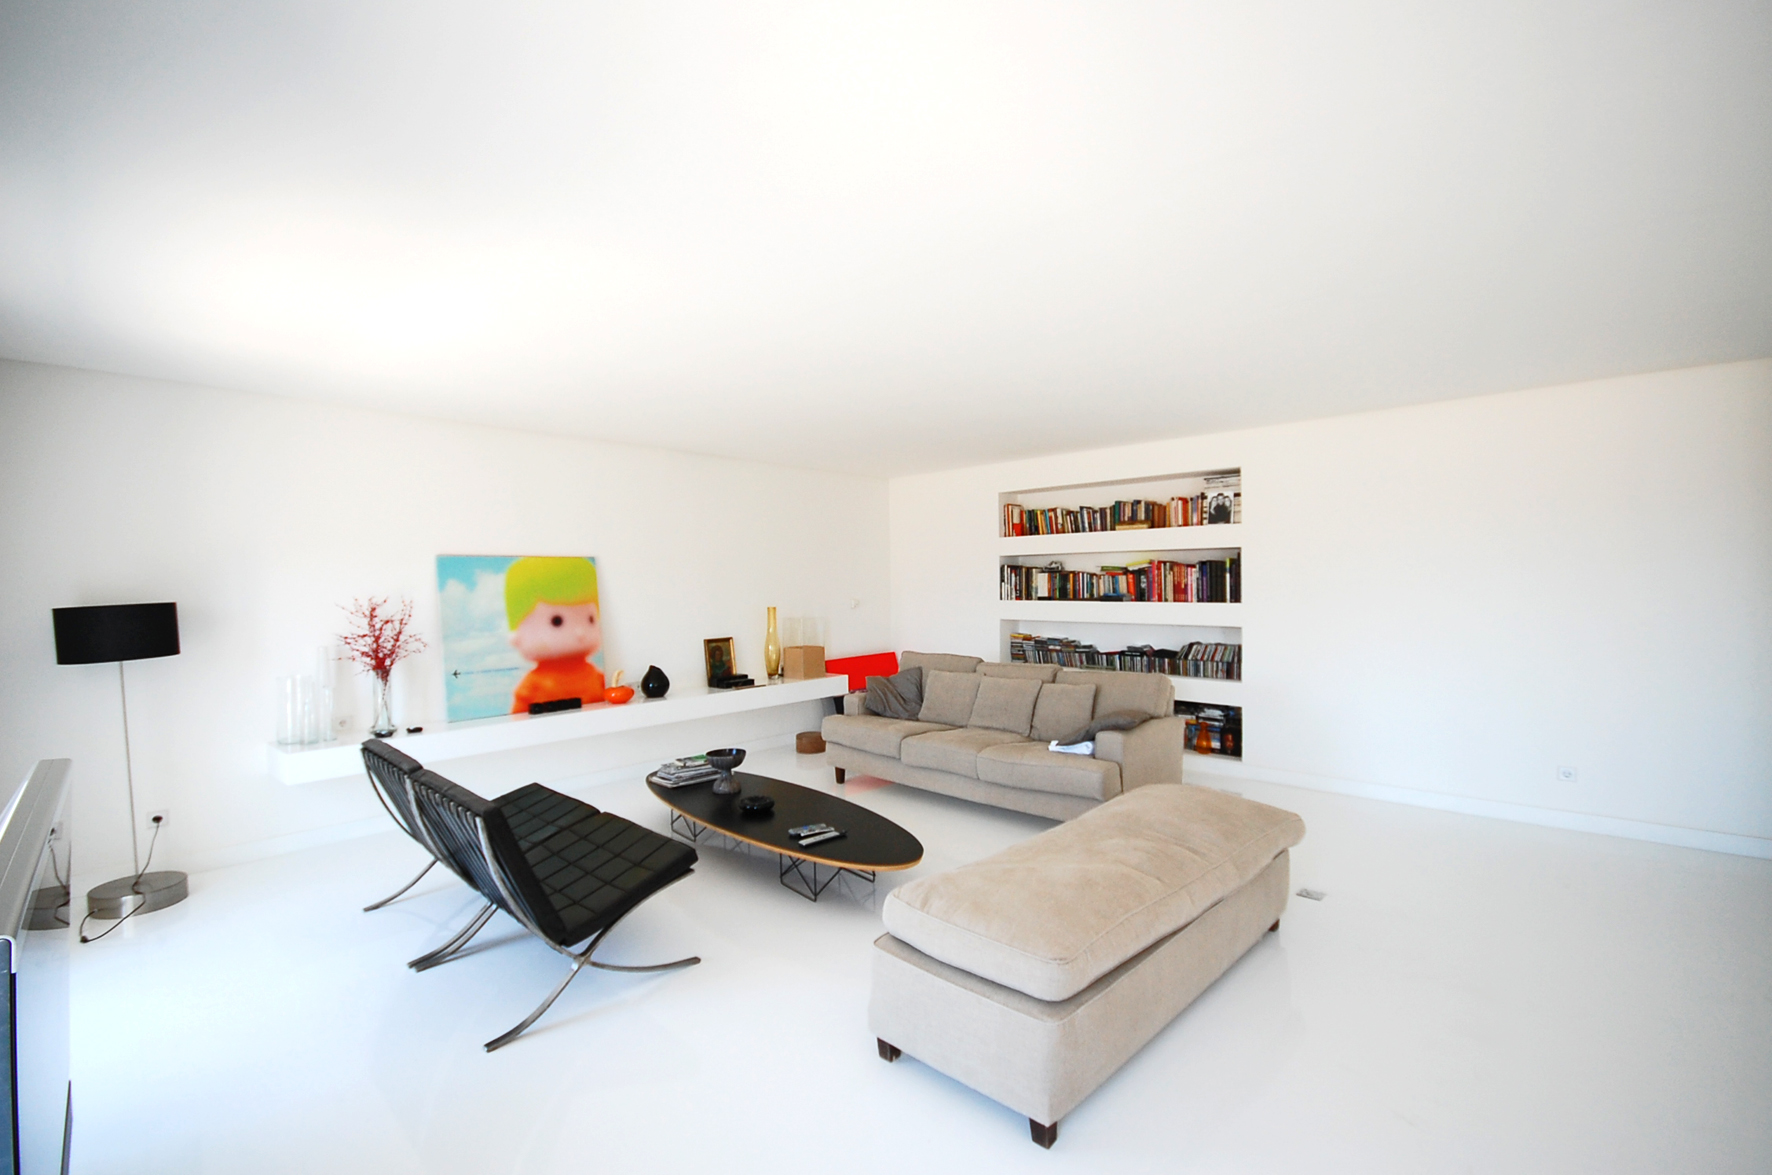 Abstract White Apartment / Filipe Borges de Macedo, © Filipe Borges de Macedo